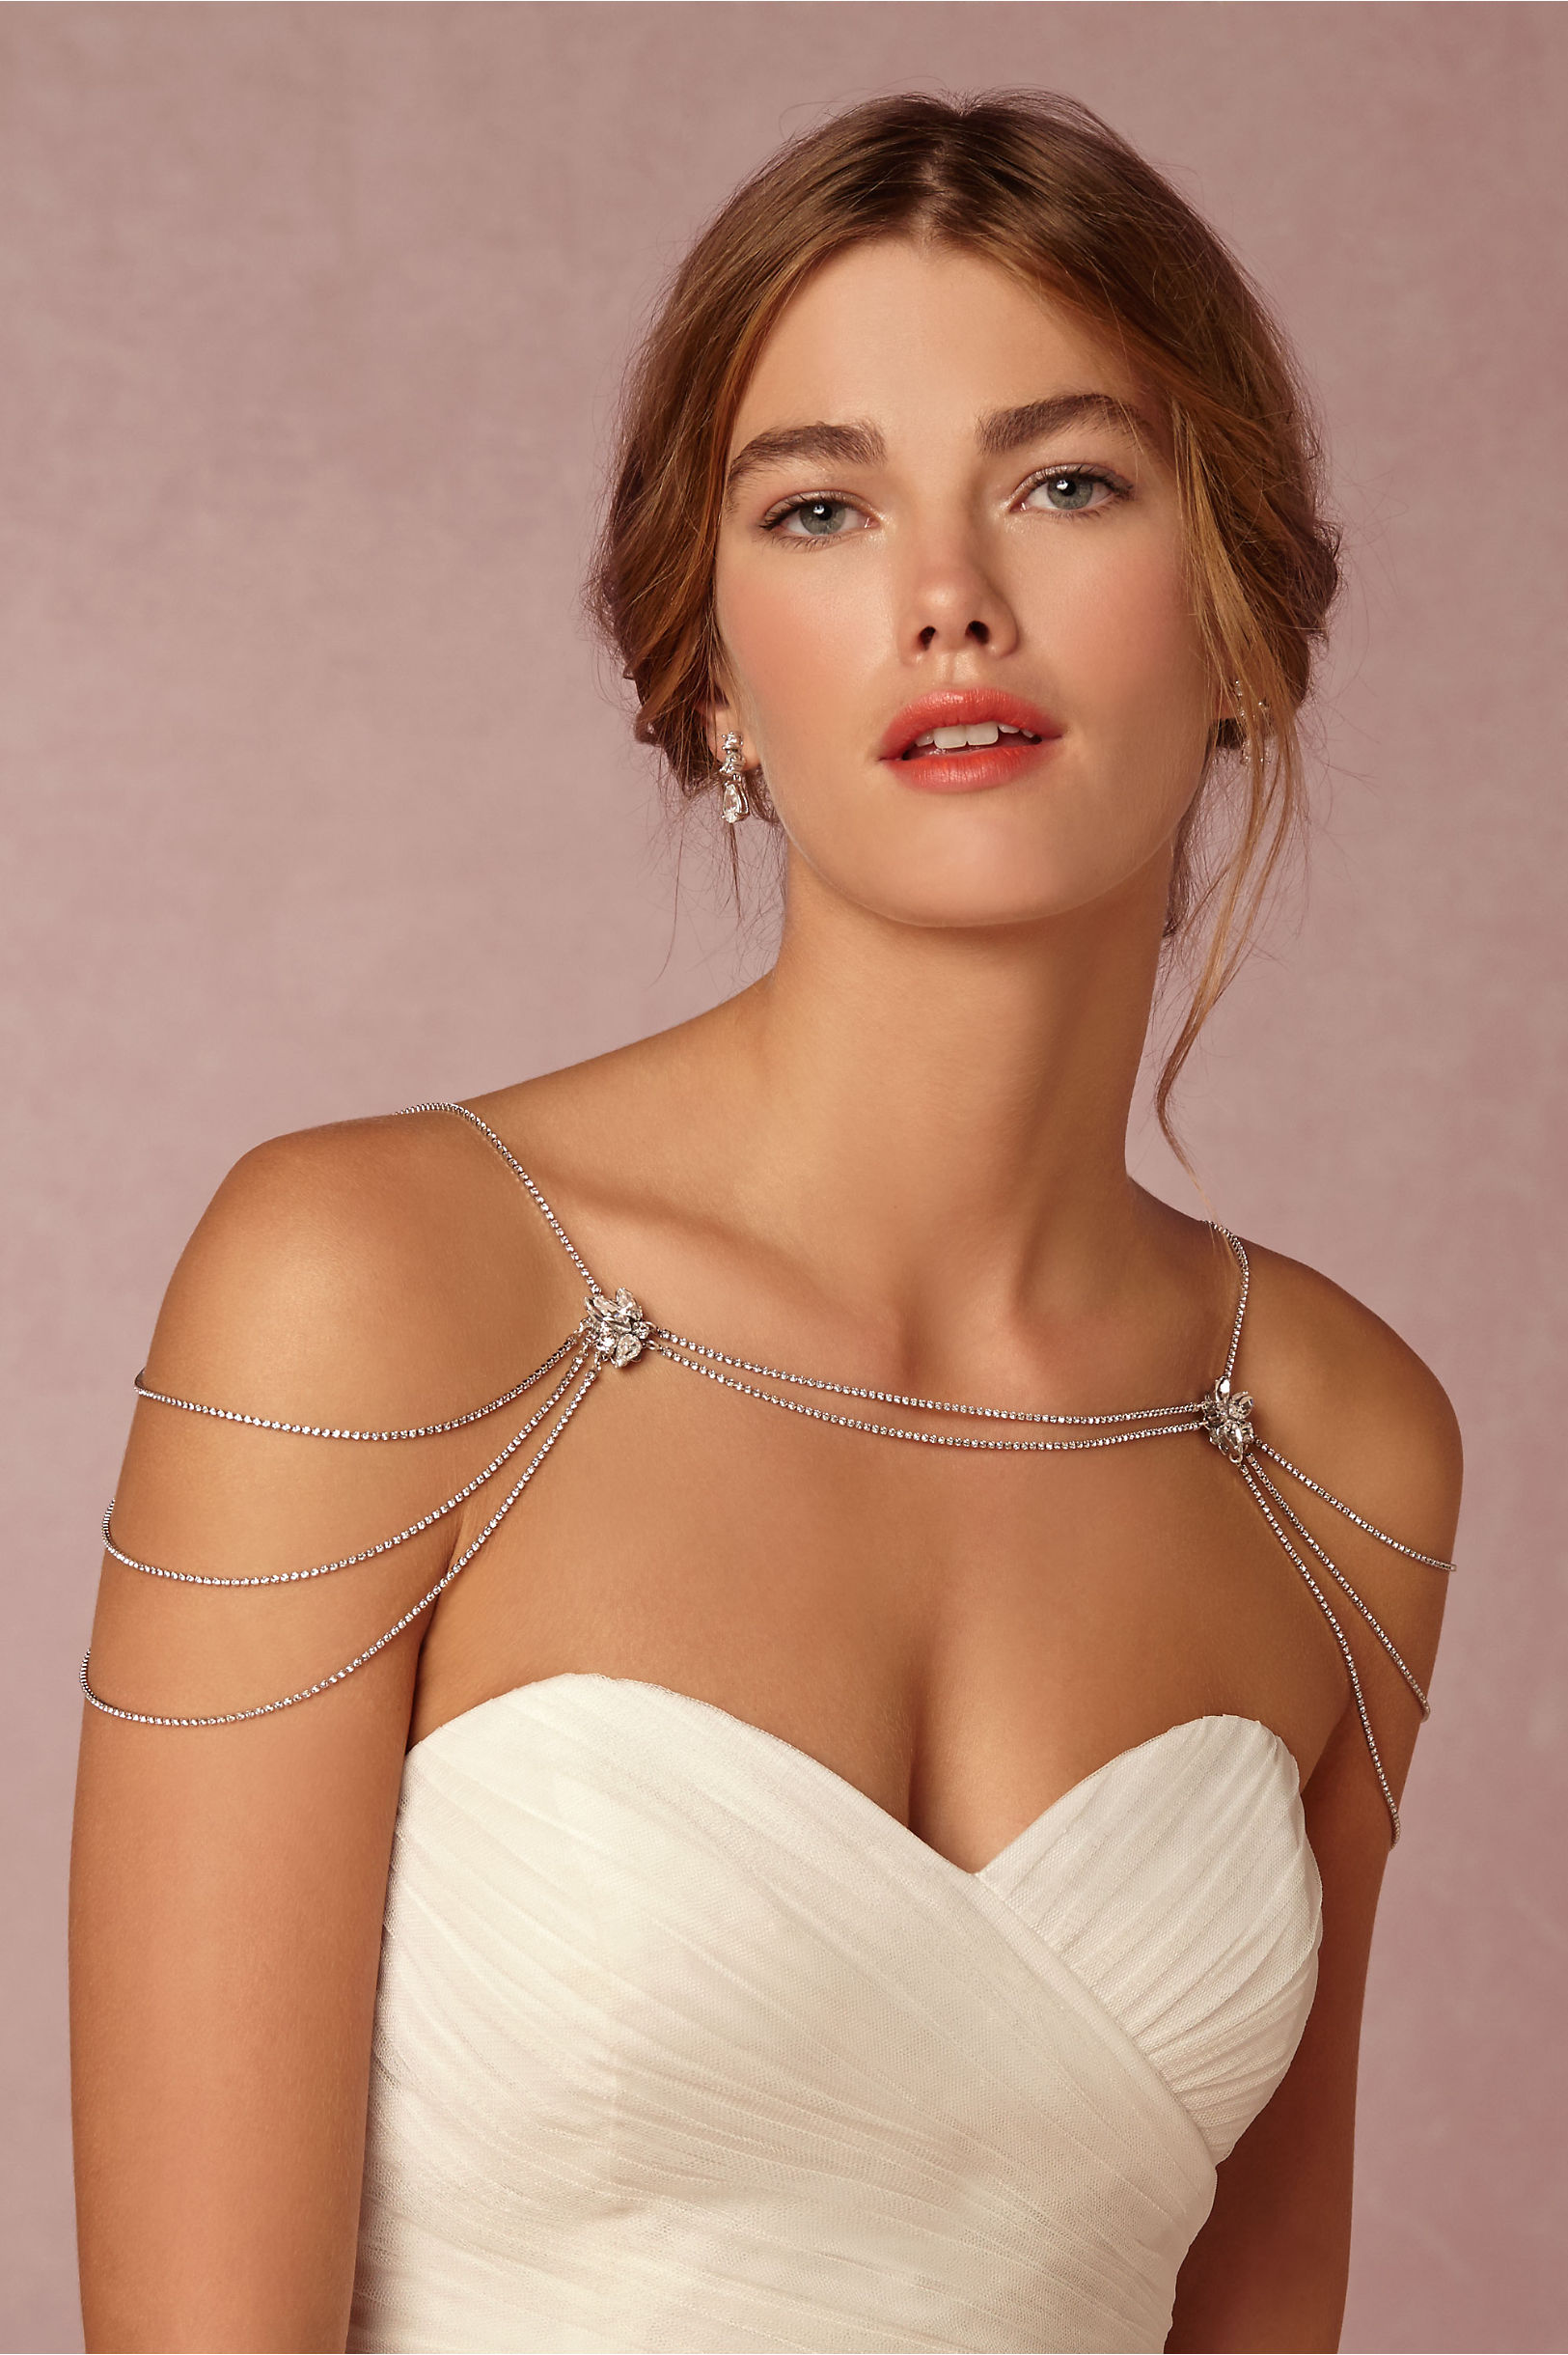 Reina shoulder necklace in sale bhldn sara gabriel silver reina shoulder necklace bhldn ombrellifo Choice Image